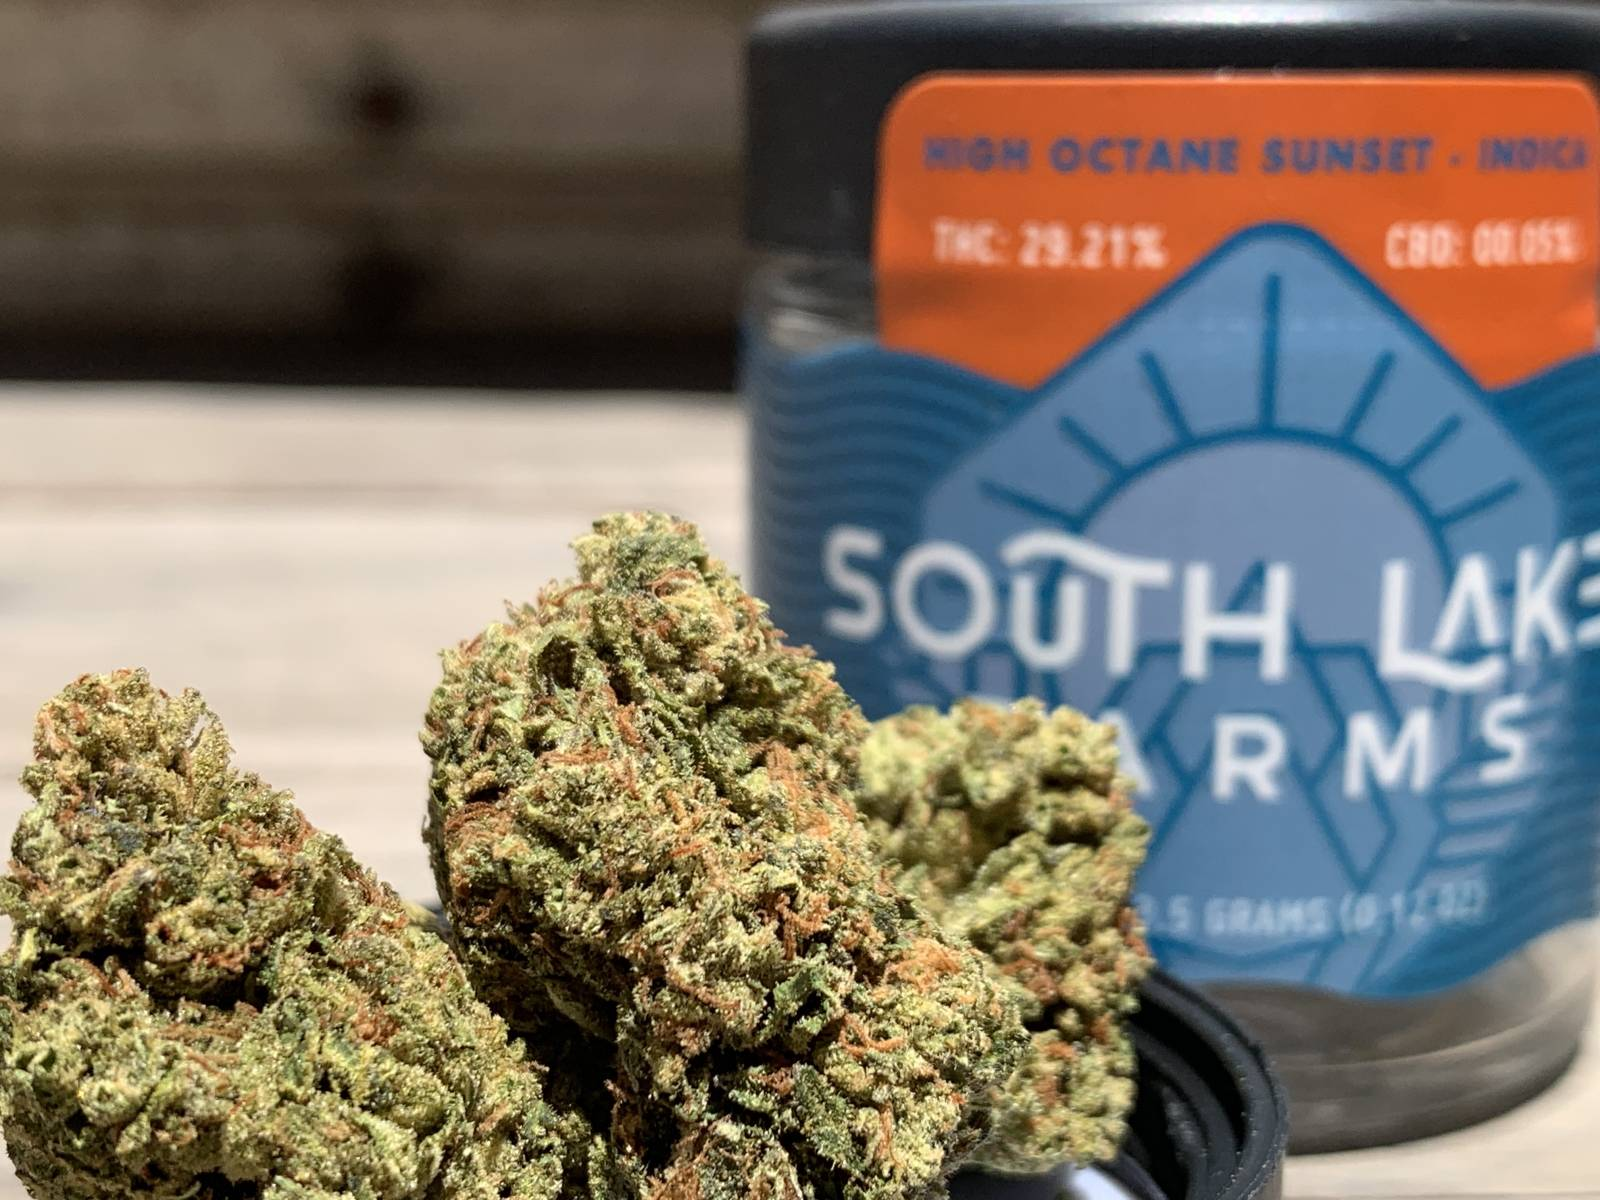 South Lake Farms High Octane x sunset Sherbert packaged eighth